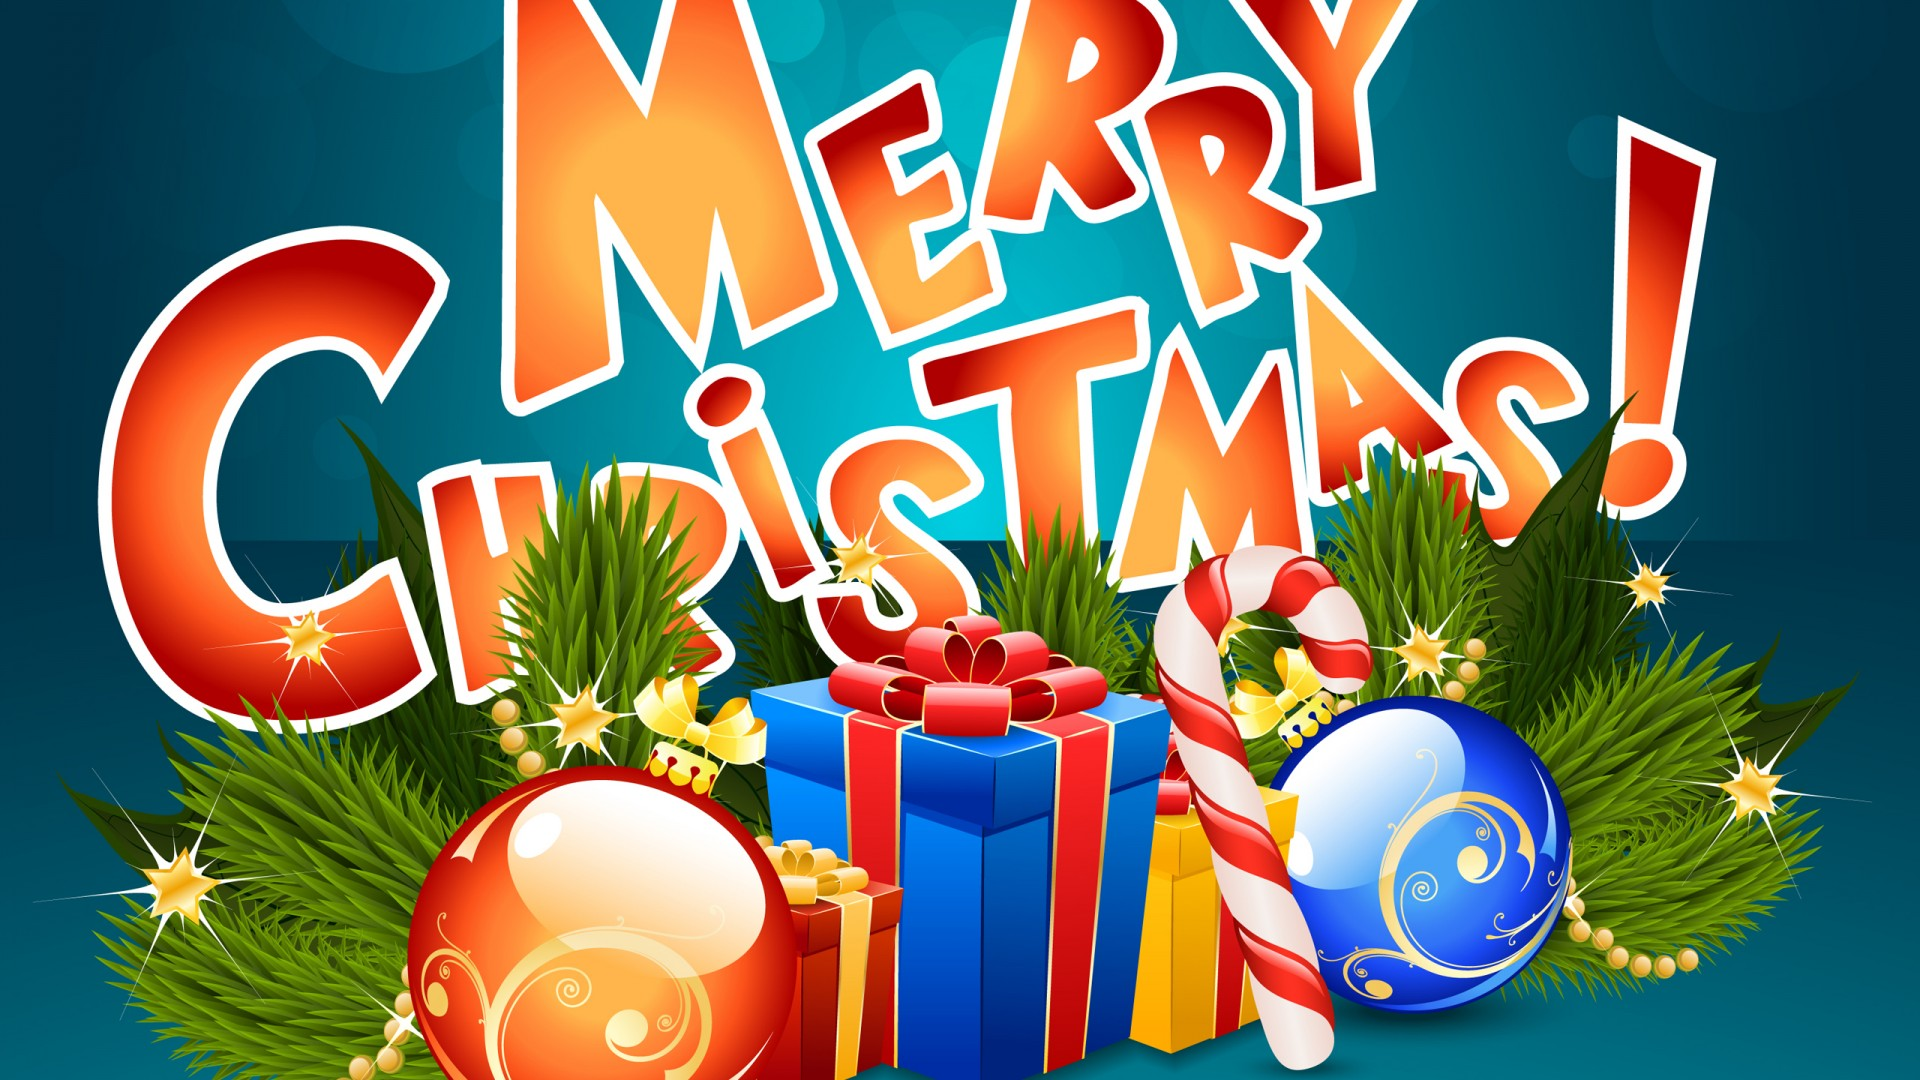 Christmas Images Hd Download.Merry Christmas Hd Presents 1920x1080 1080p Wallpaper